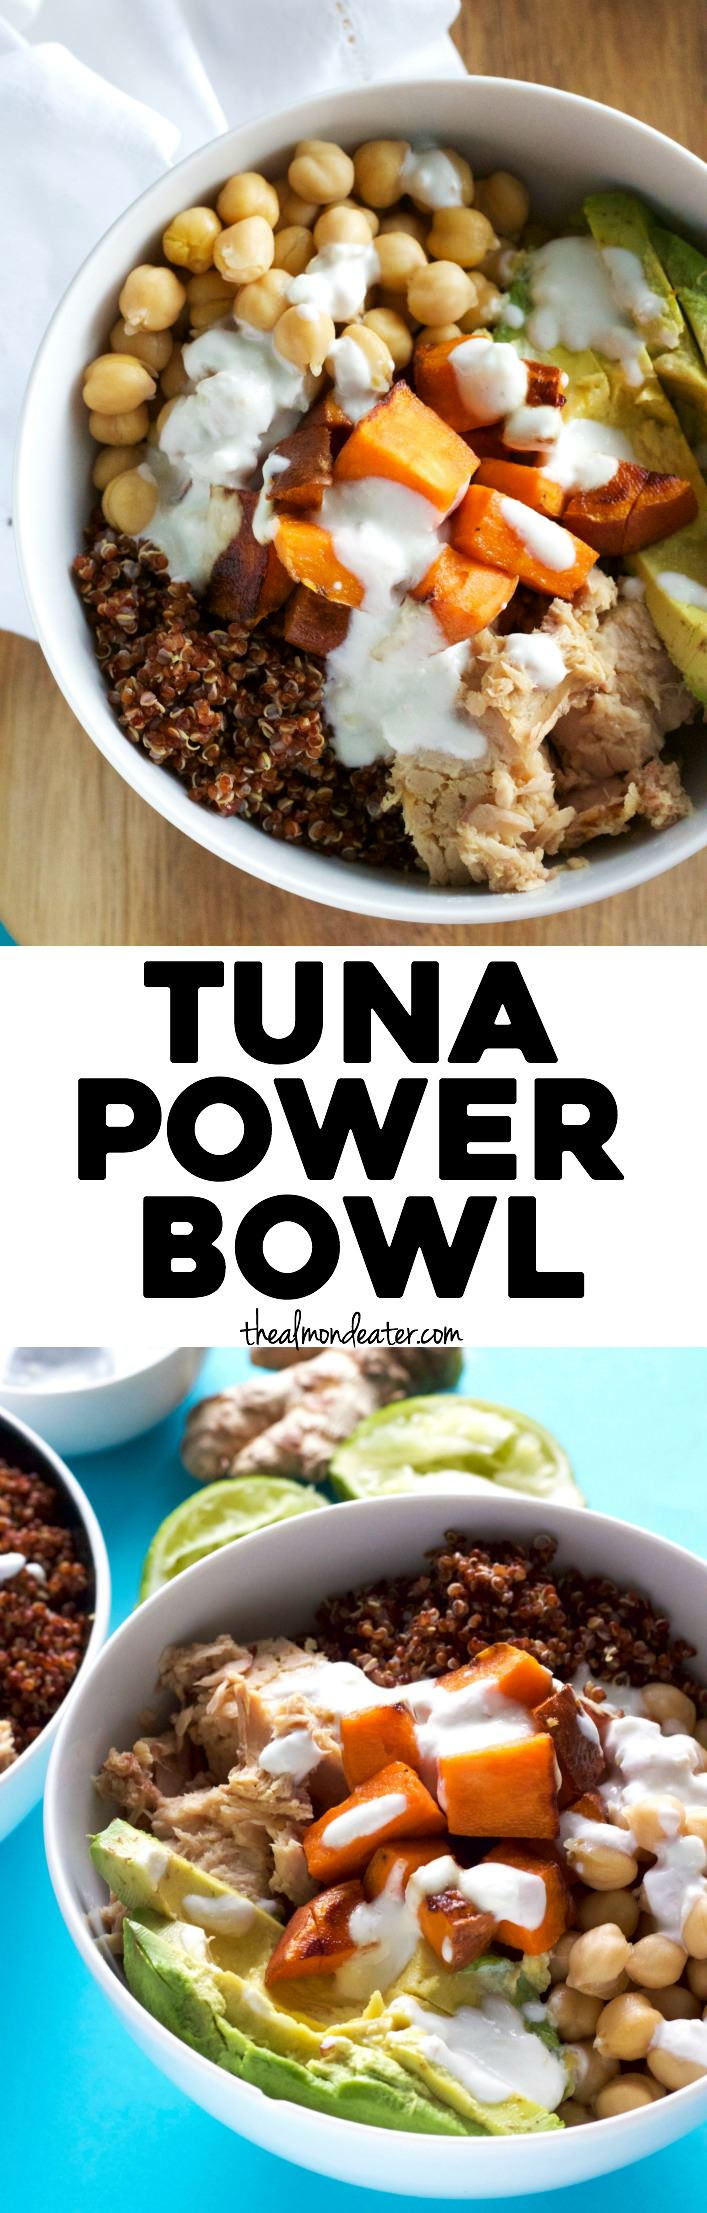 Tuna Power Bowl filled with tons of PROTEIN, like quinoa, chickpeas and tuna | thealmondeater.com